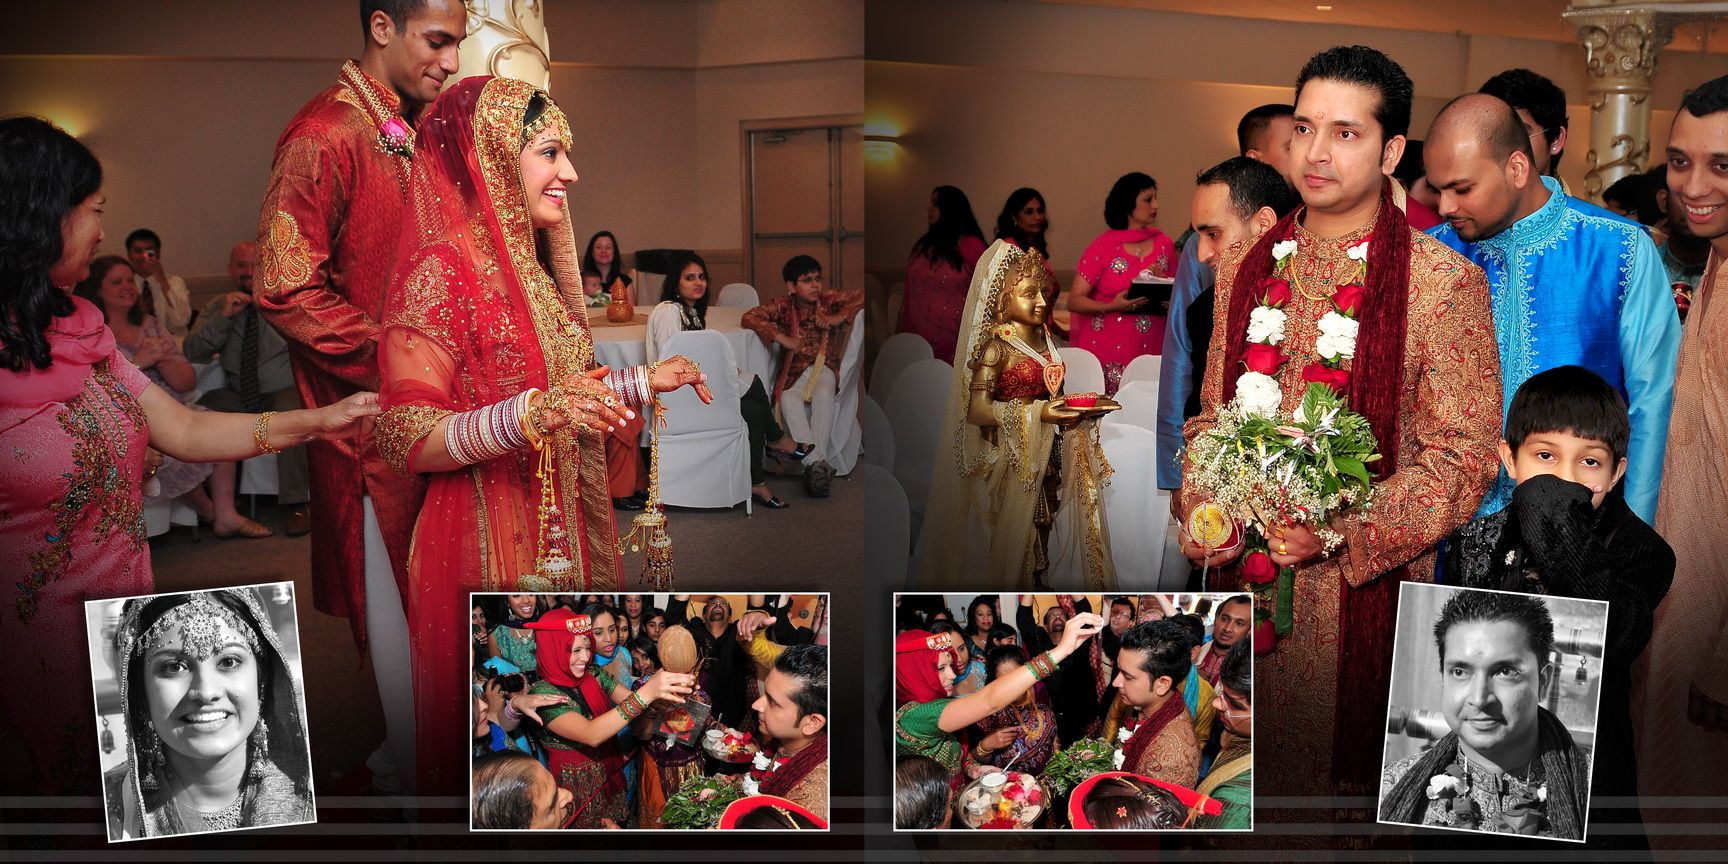 Wedding Photographer In Mumbai We Crave The Stolen Moments Of Life Like Loving